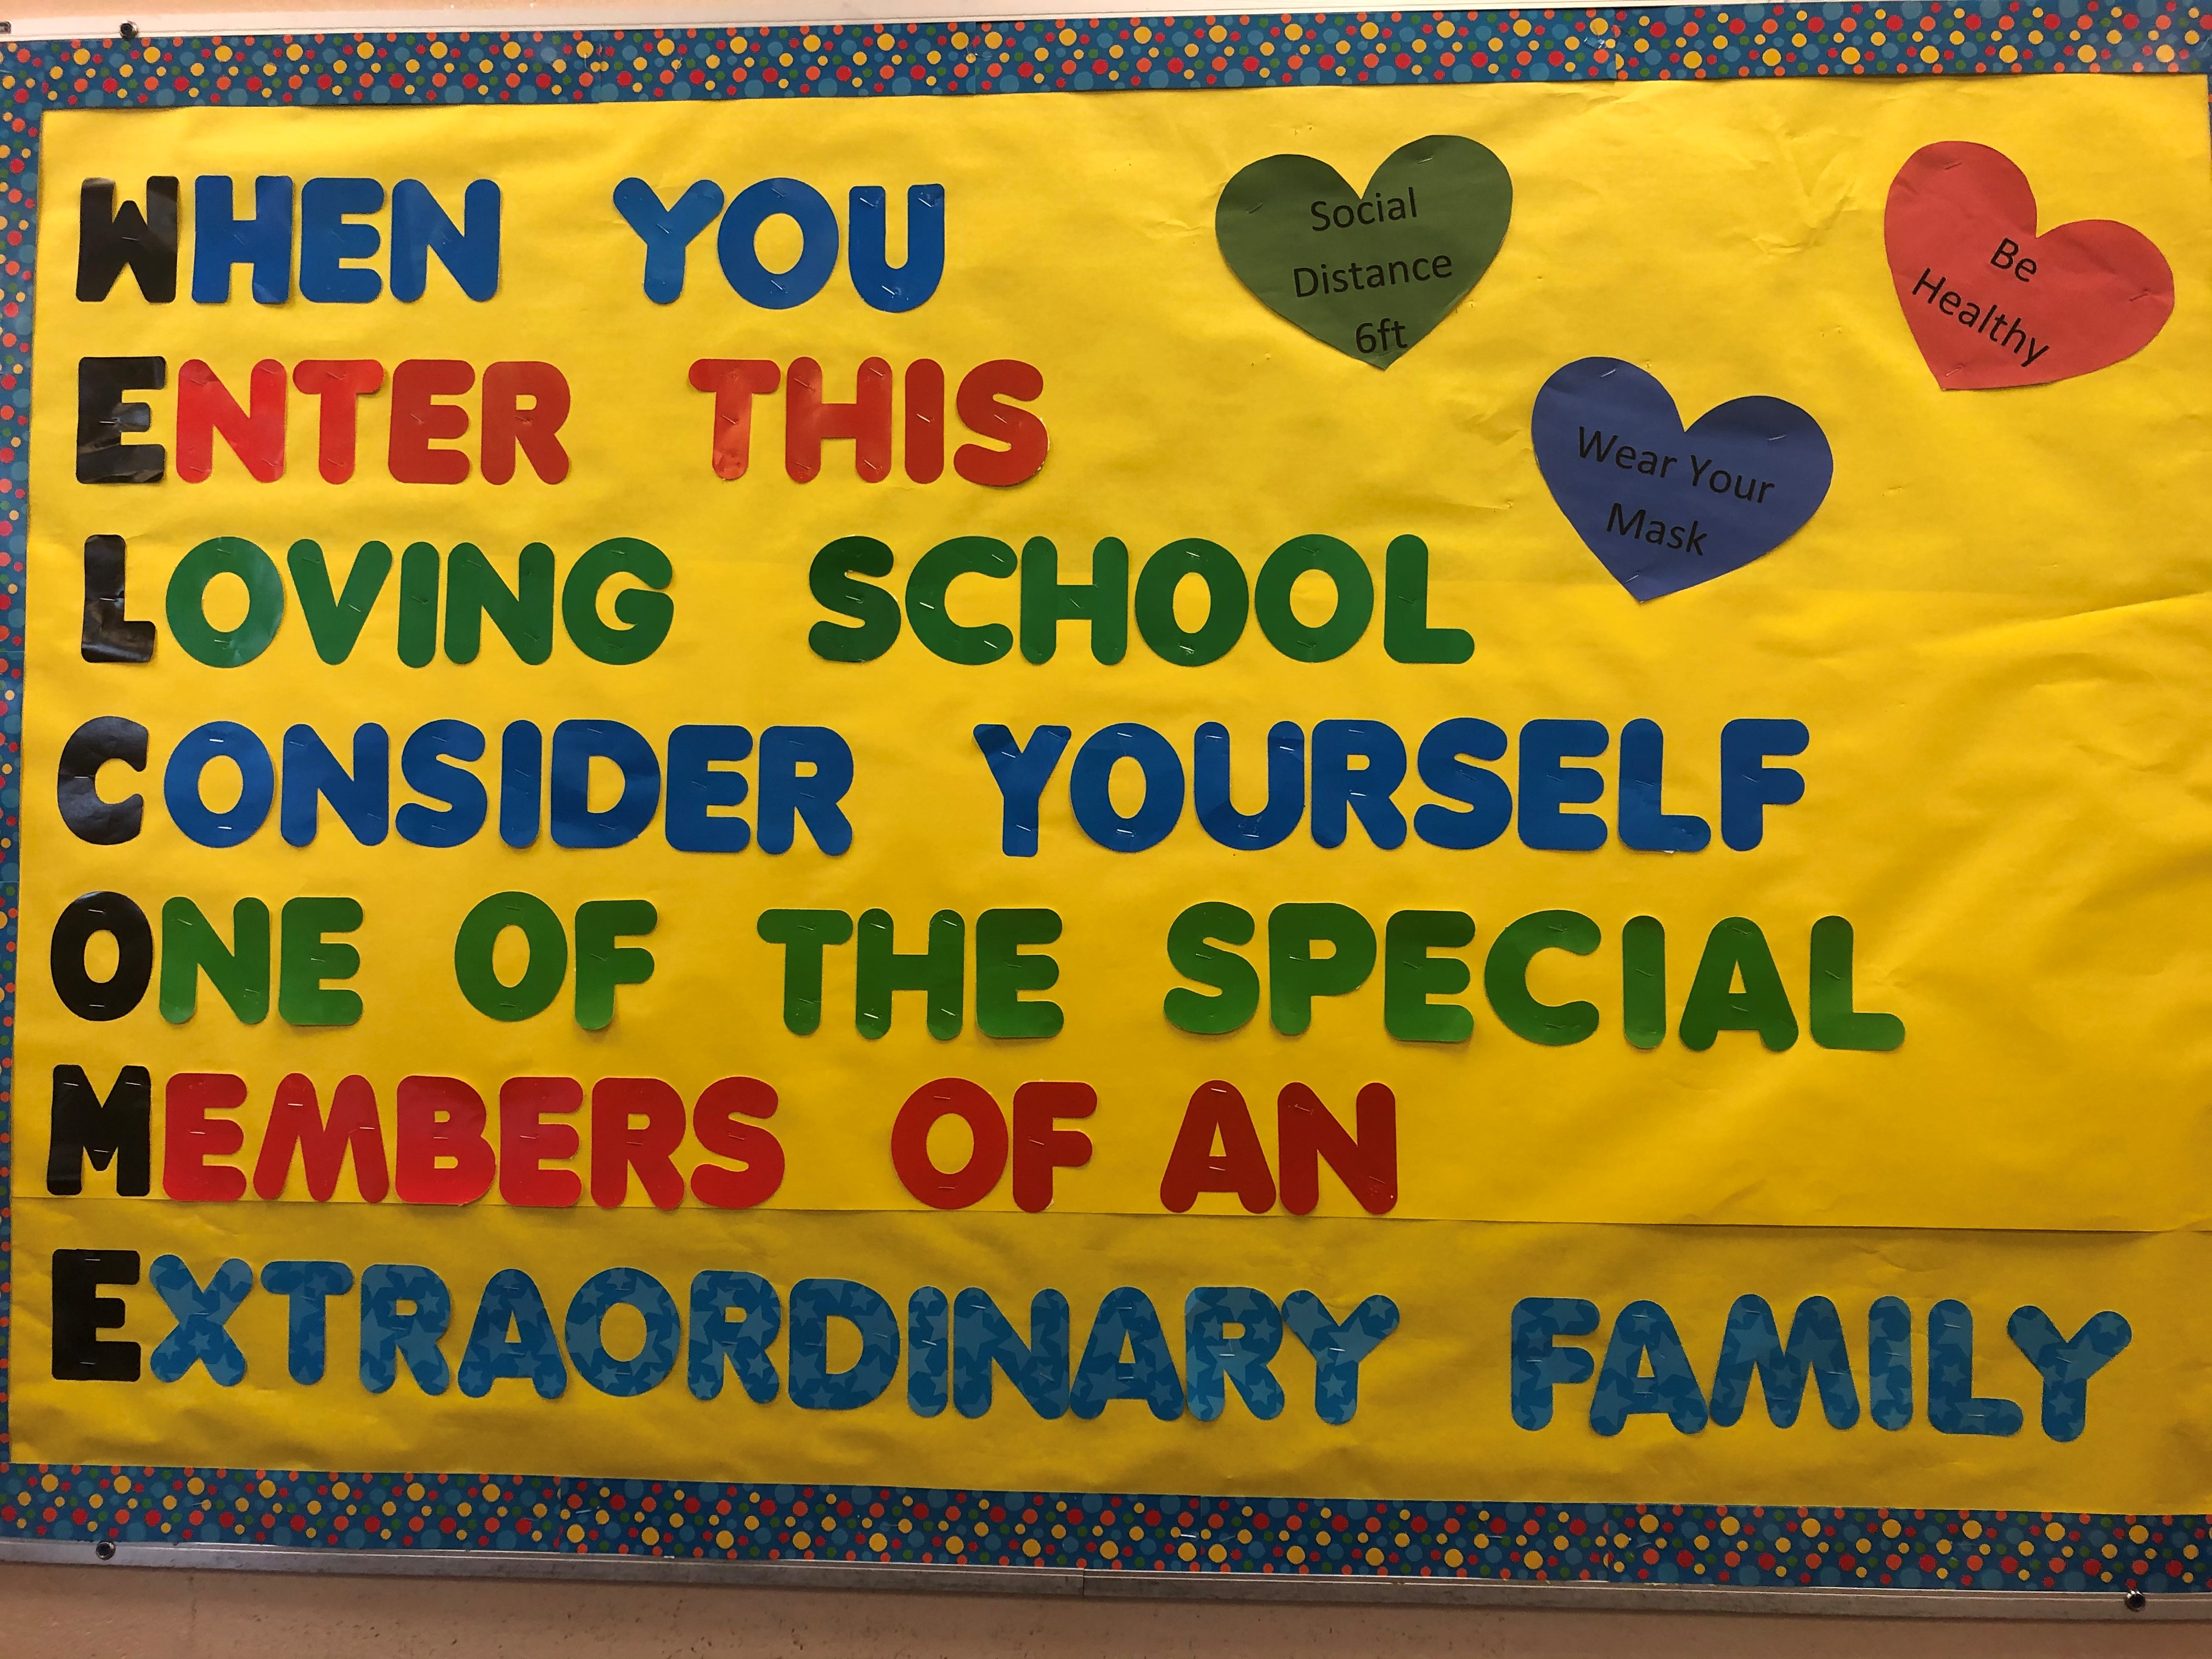 Photo of a bulletin board welcoming students.